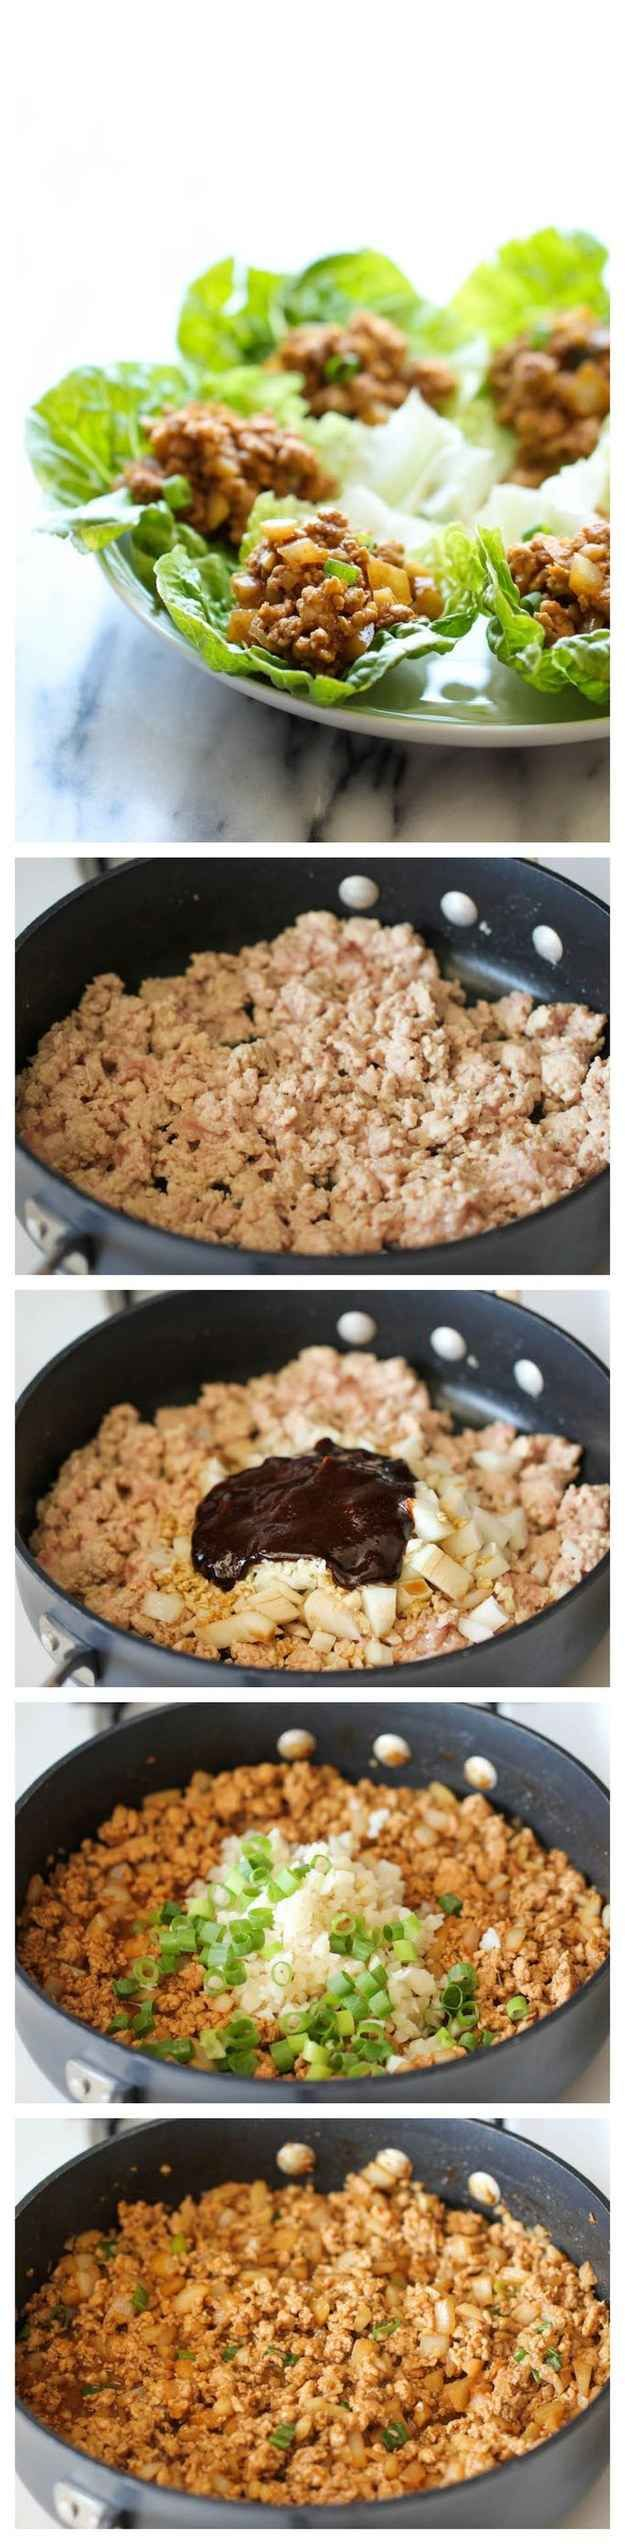 20 Minute Chicken Dinners  Copycat P.F. Chang's Chicken Lettuce Wraps